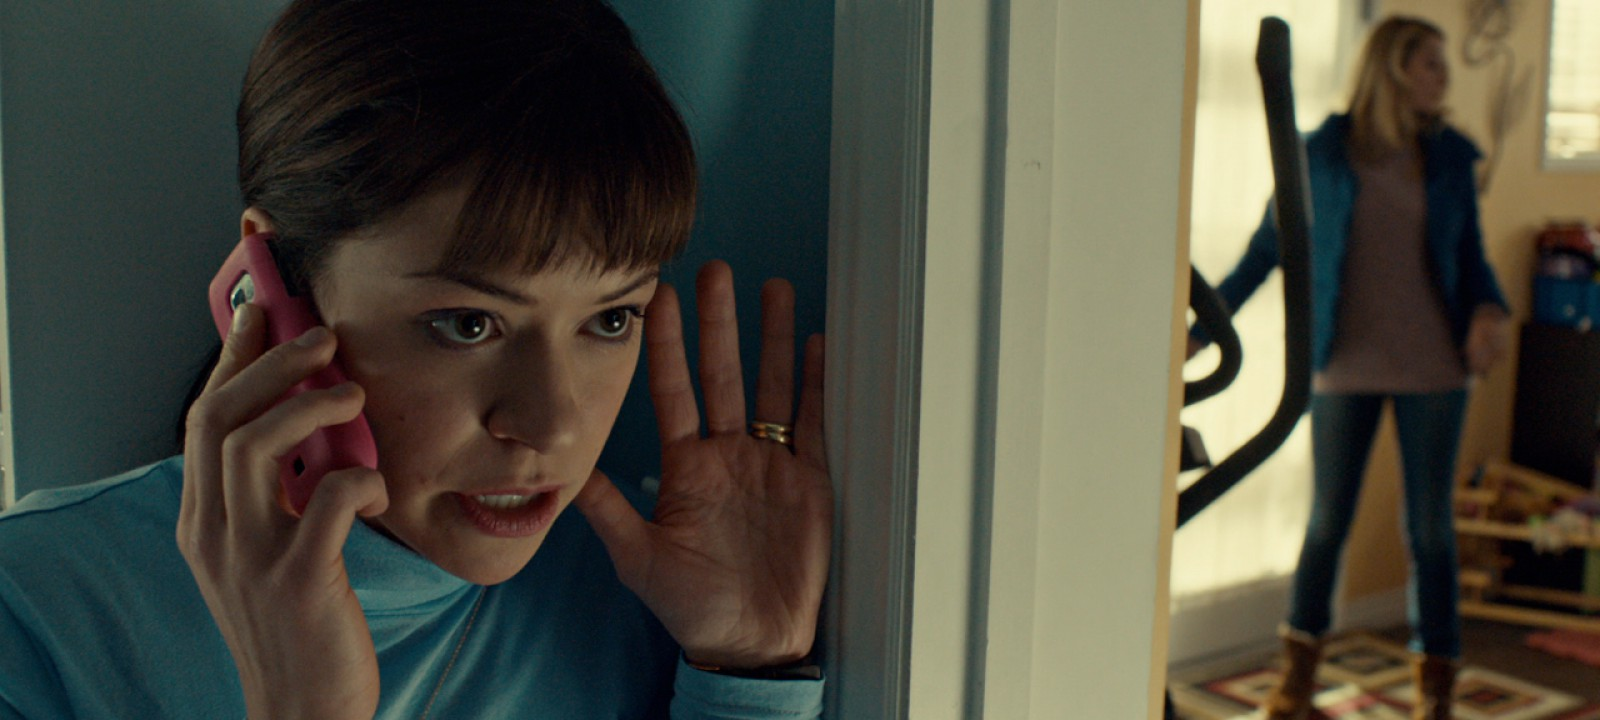 OrphanBlack_S1_E08_01_photo_web